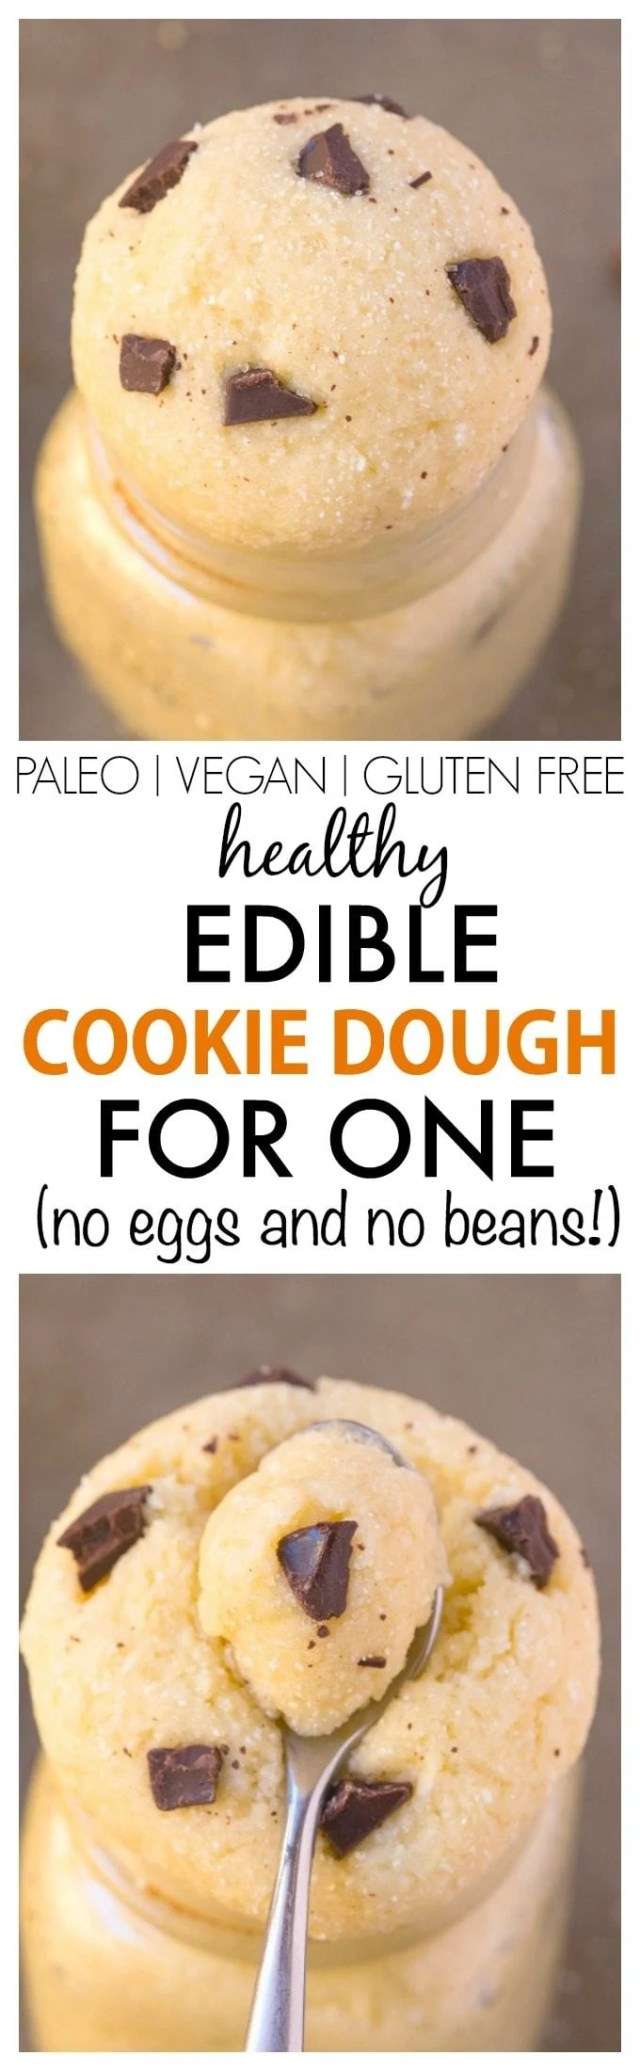 Healthy Edible EGG FREE Cookie Dough for ONE- This smooth, creamy, single serve dessert or snack has NO butter, sugar, grains or beans but tastes amazing- So easy too! {vegan, gluten free, paleo recipe}- thebigmansworld.com